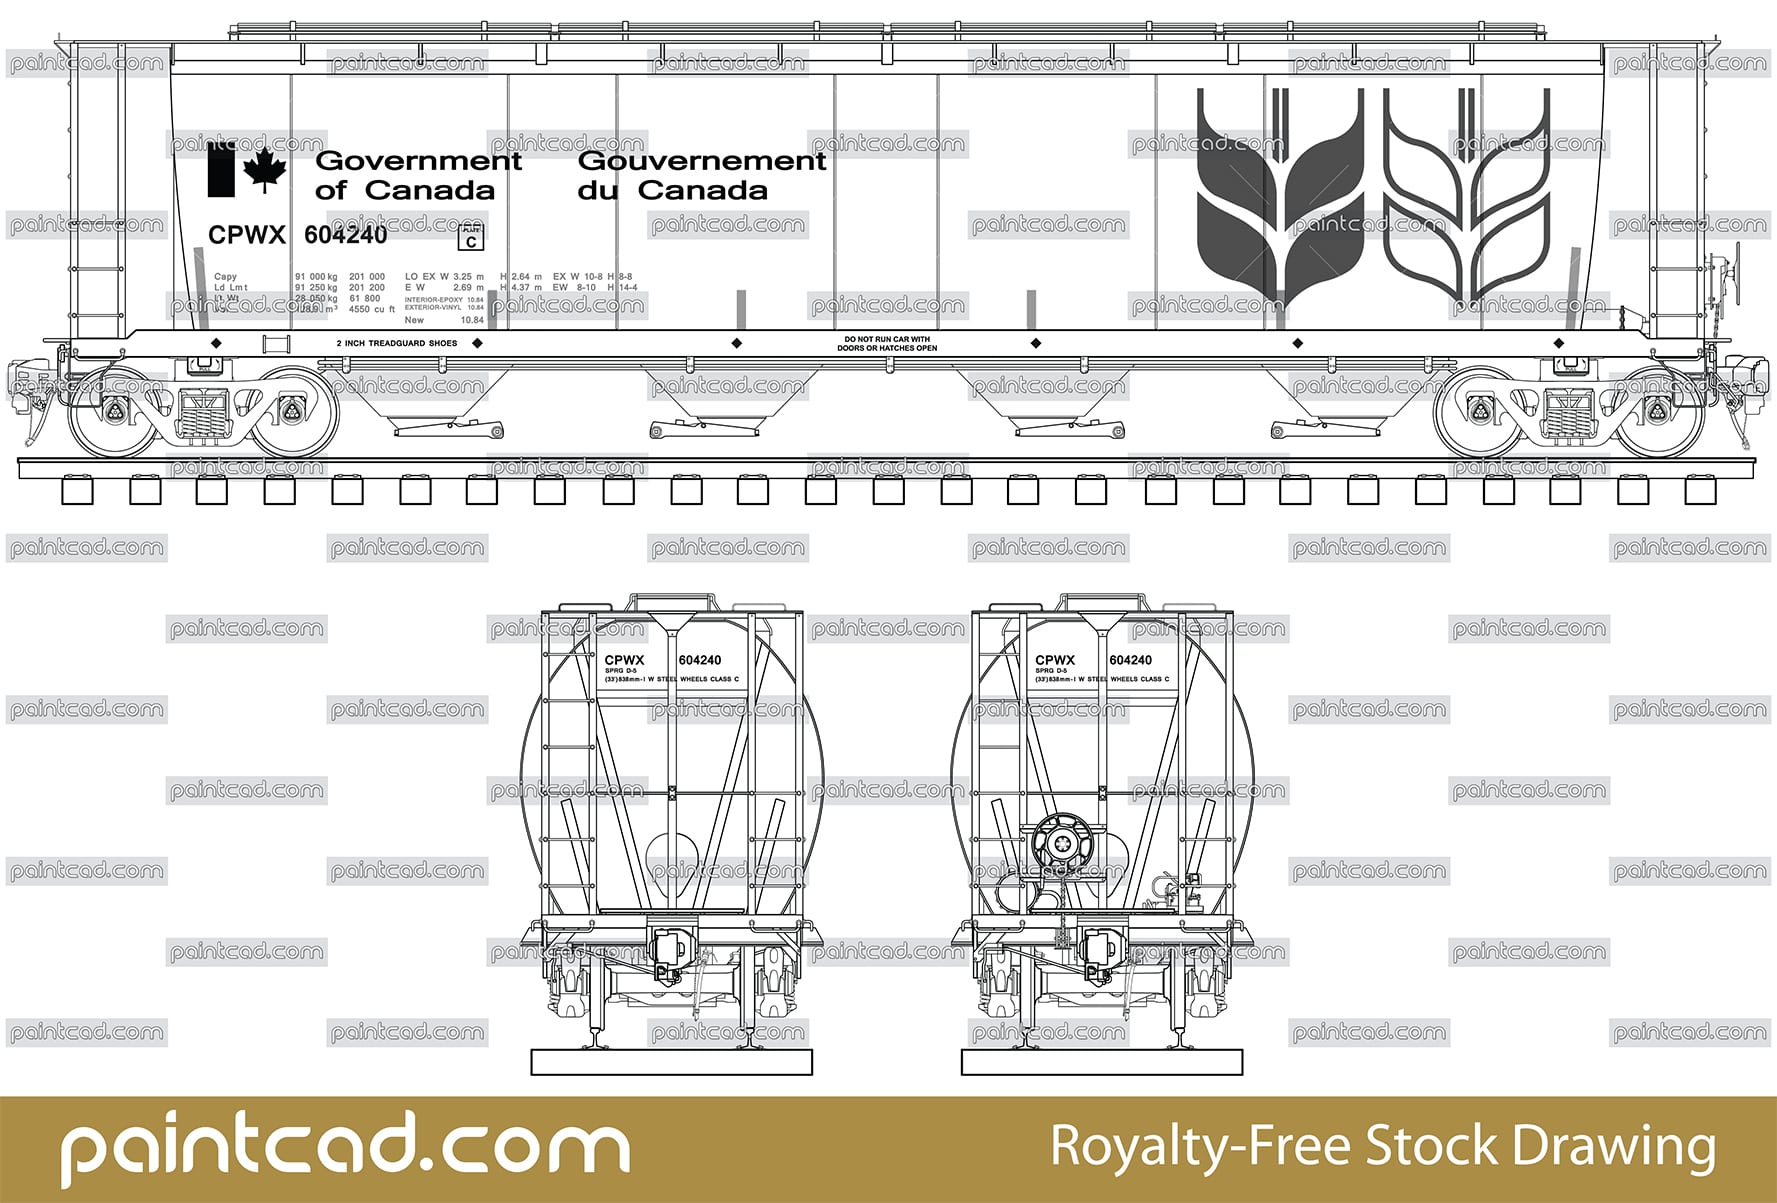 Diagram of covered hopper car by the Gouvernement du Canada - vector illustration